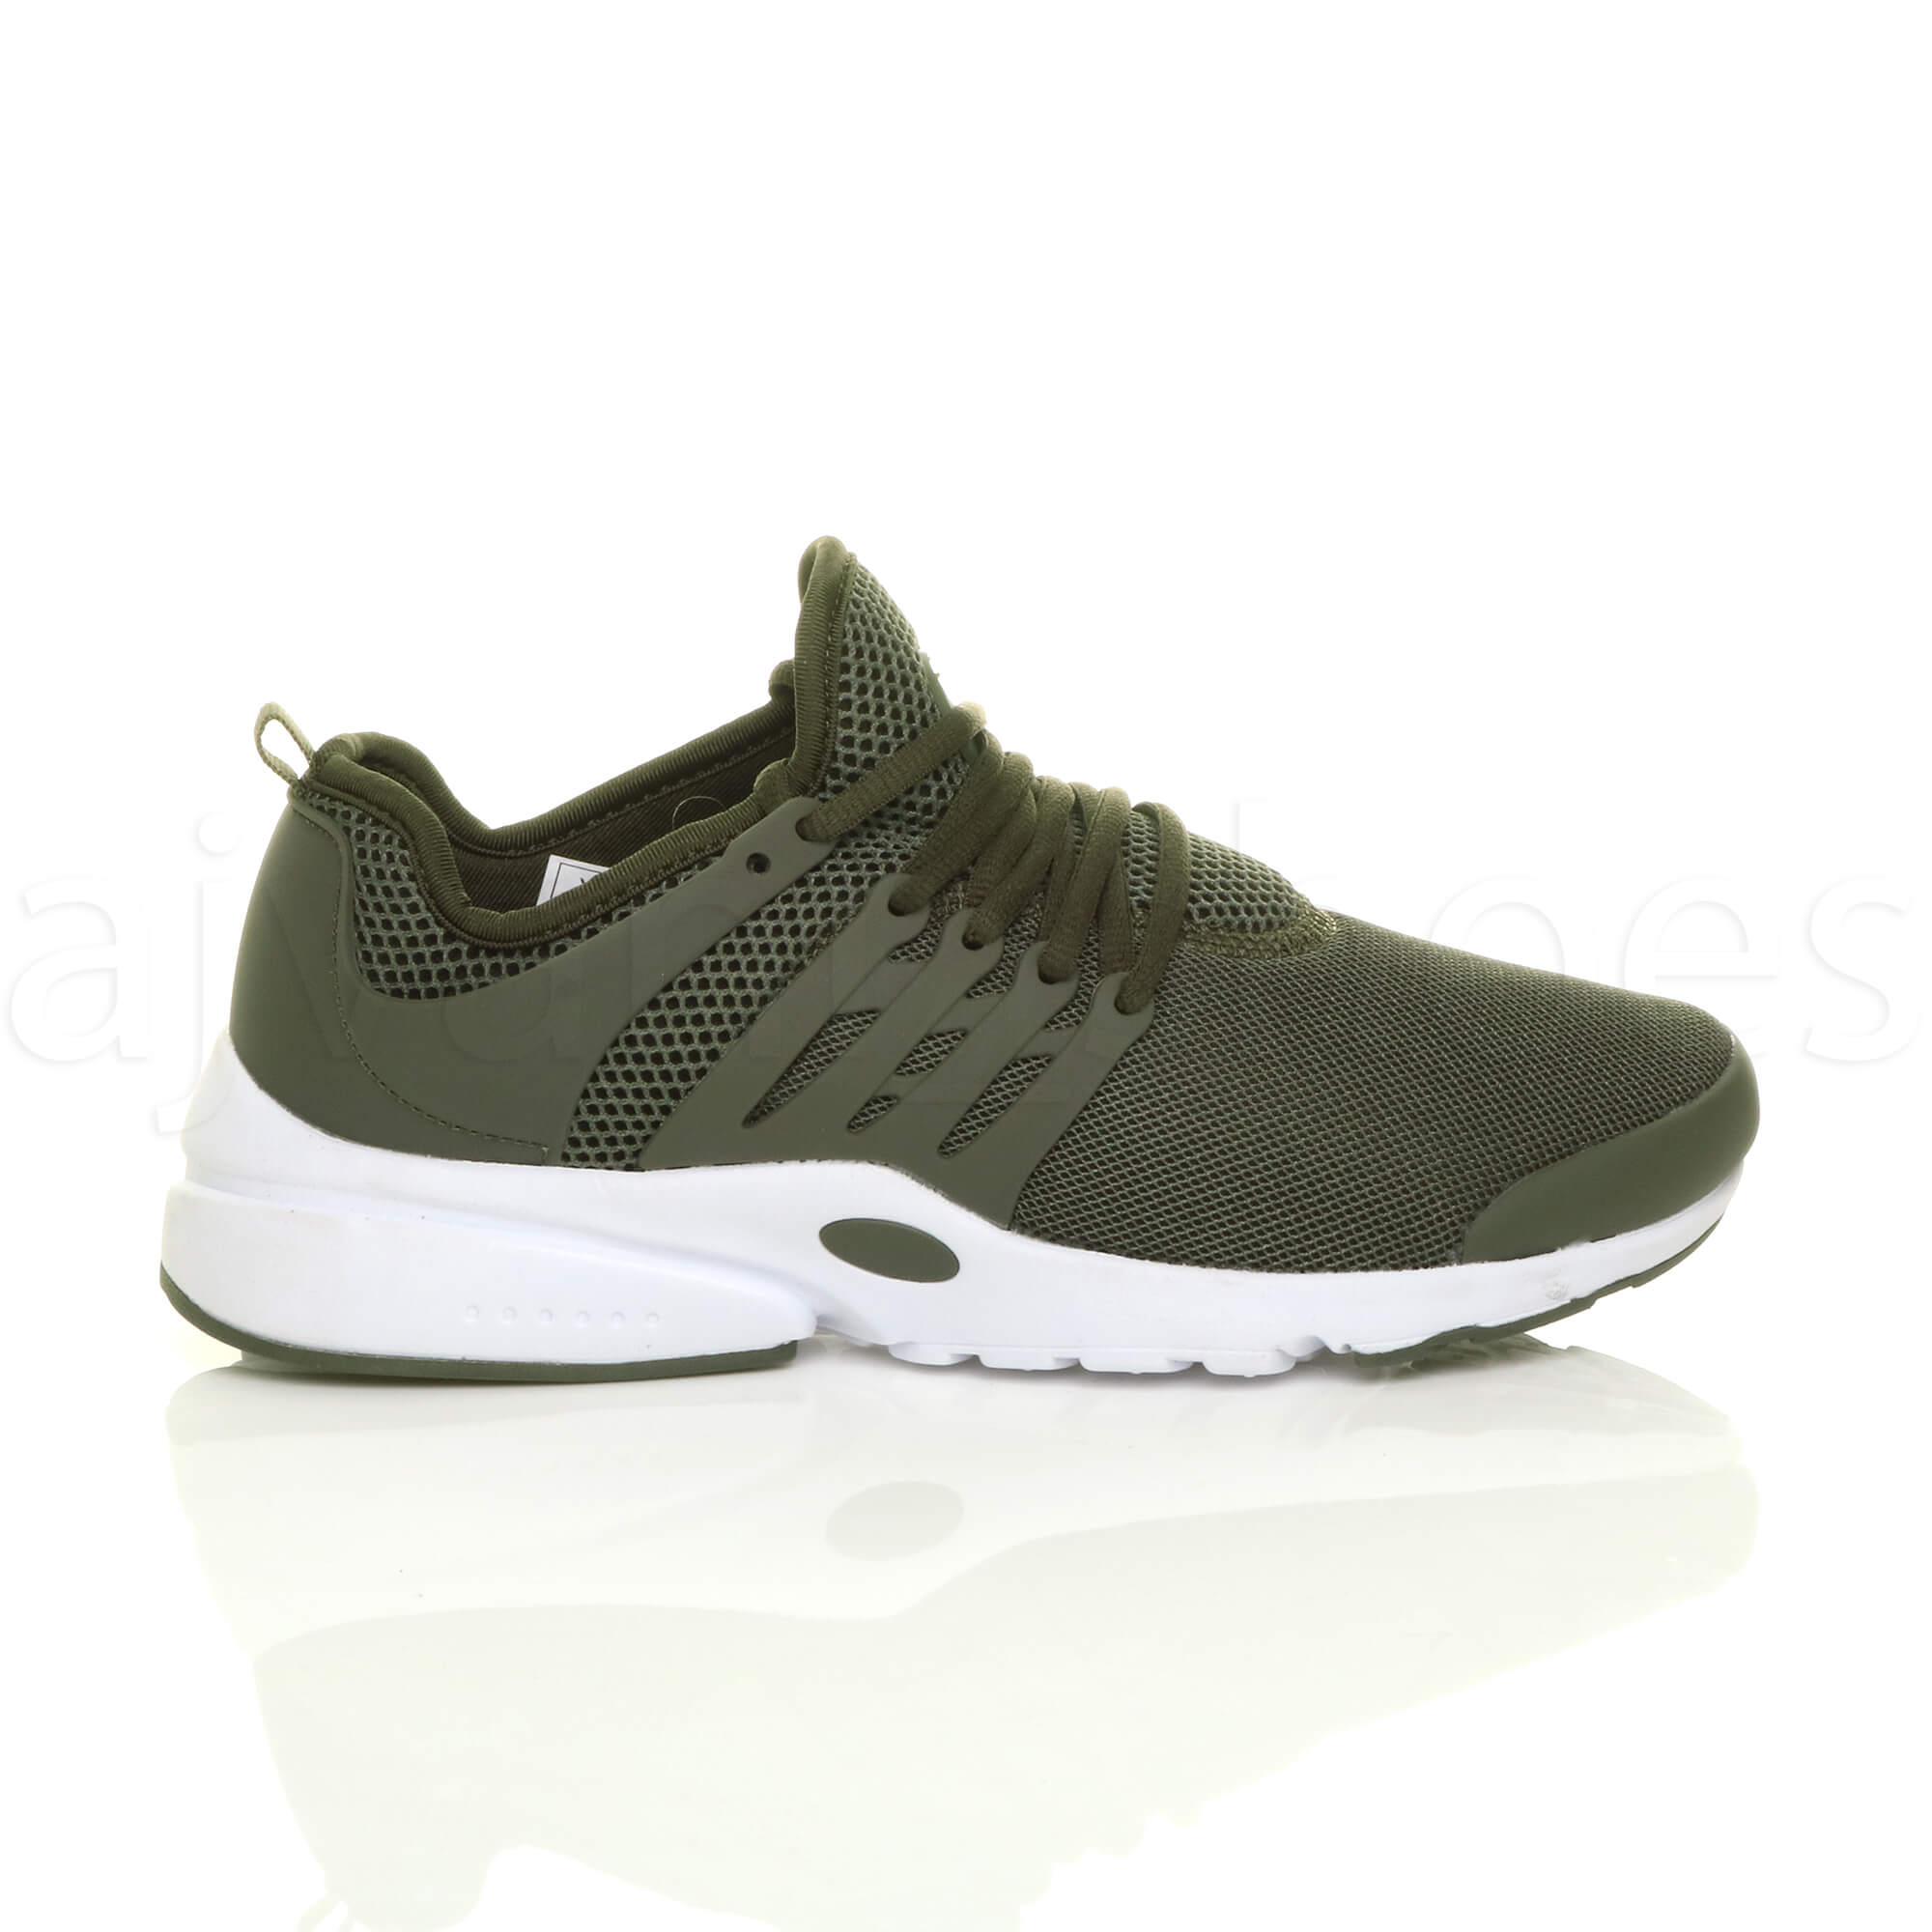 MENS-LACE-UP-SPORTS-GYM-FITNESS-RUNNING-FLEXIBLE-TRAINERS-CASUAL-SNEAKERS-SIZE